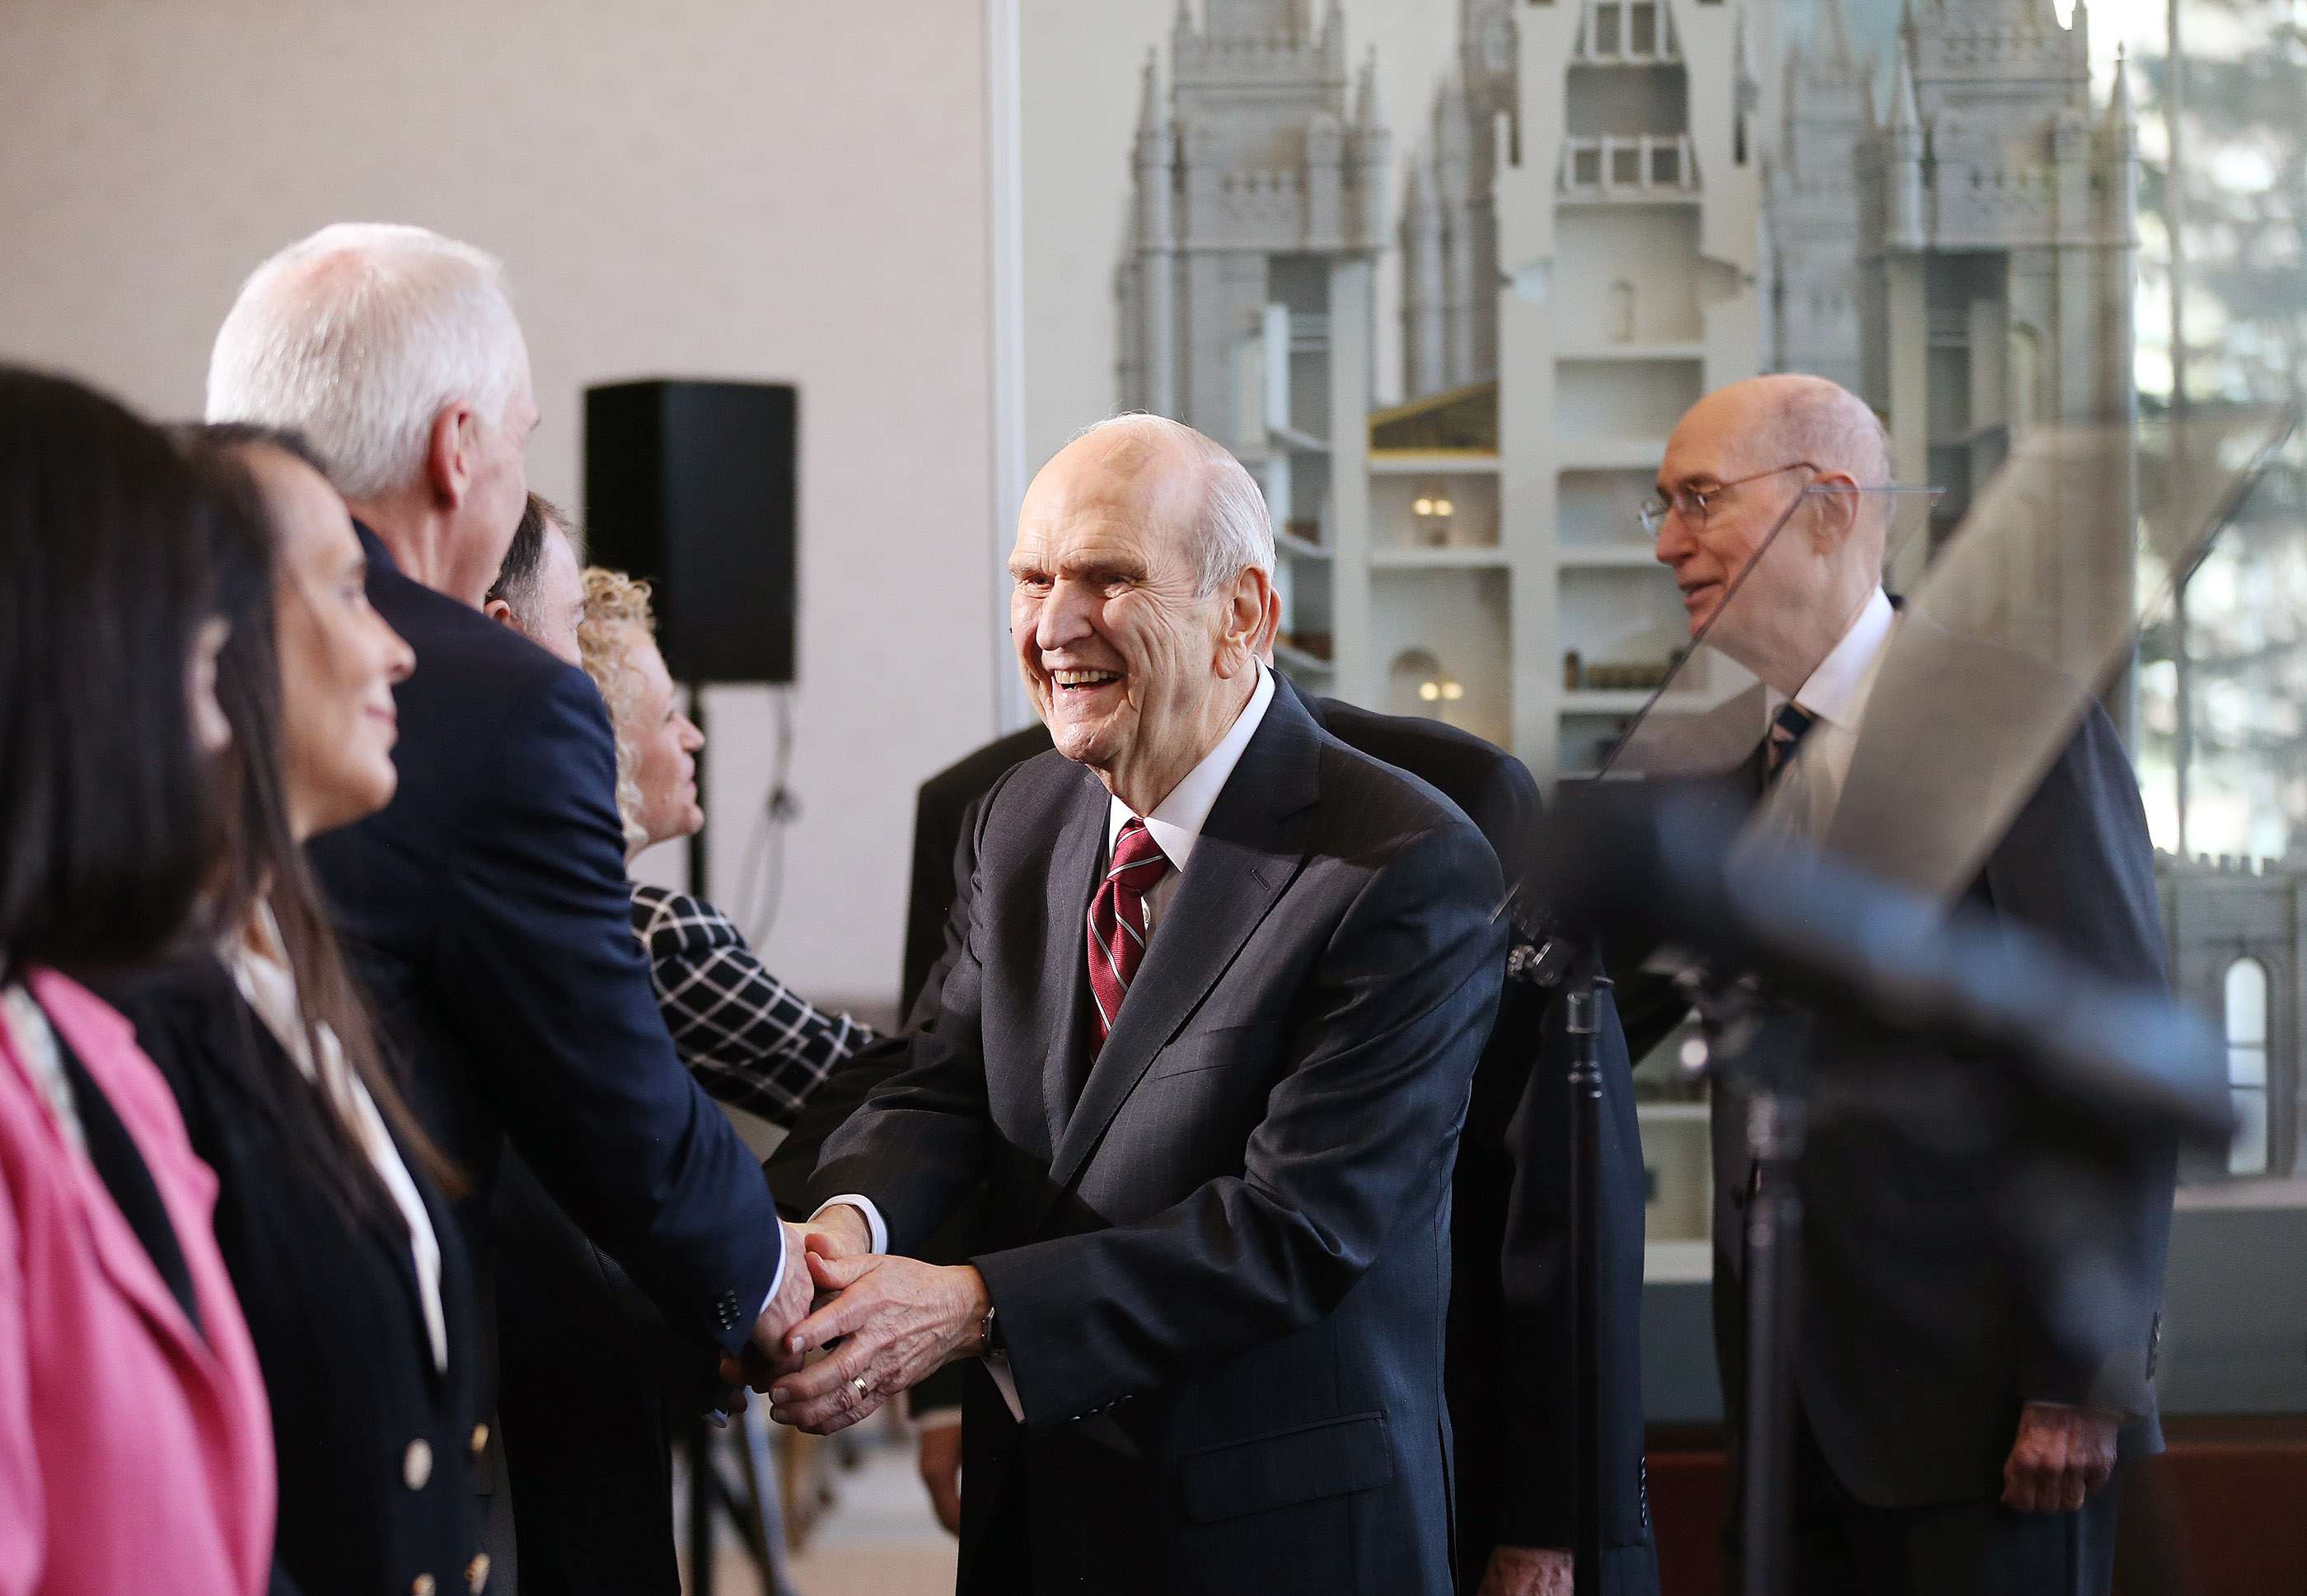 President Russell M. Nelson of The Church of Jesus Christ of Latter-day Saints shakes hands with dignitaries prior to speaking during a press conference in Salt Lake City on Friday, April 19, 2019 about renovations to the Salt Lake Temple and grounds.